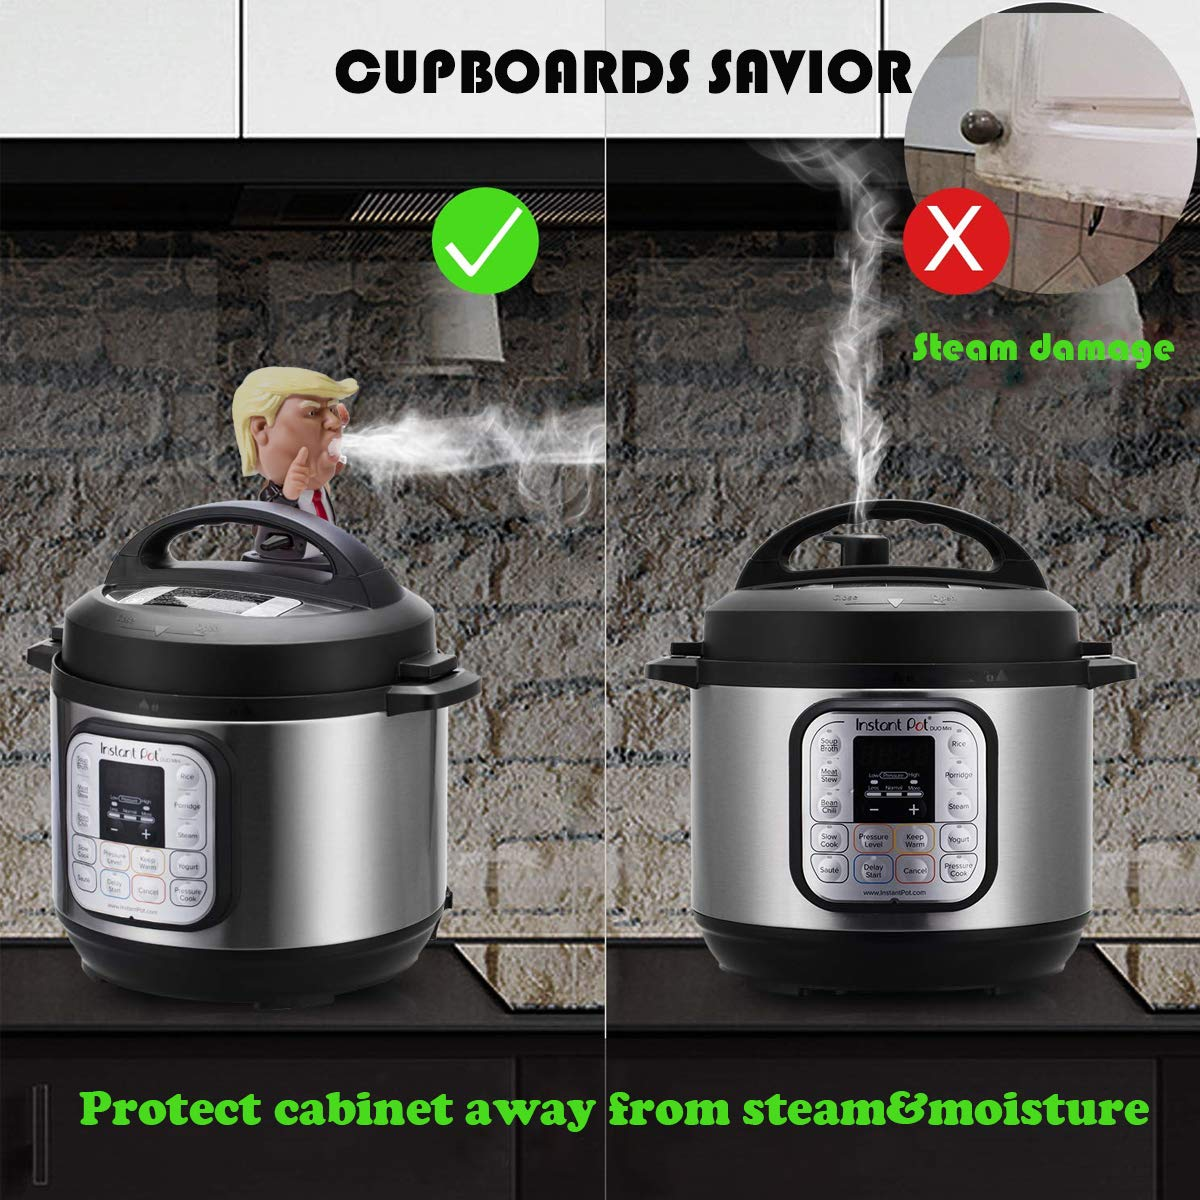 Steam Diverter Silicone Steam Release Diverter Pressure Accessories Cabinets Savior Compatible with Instant Pot Pressure Cooker Fit All Size of Duo Ultra Smart Models